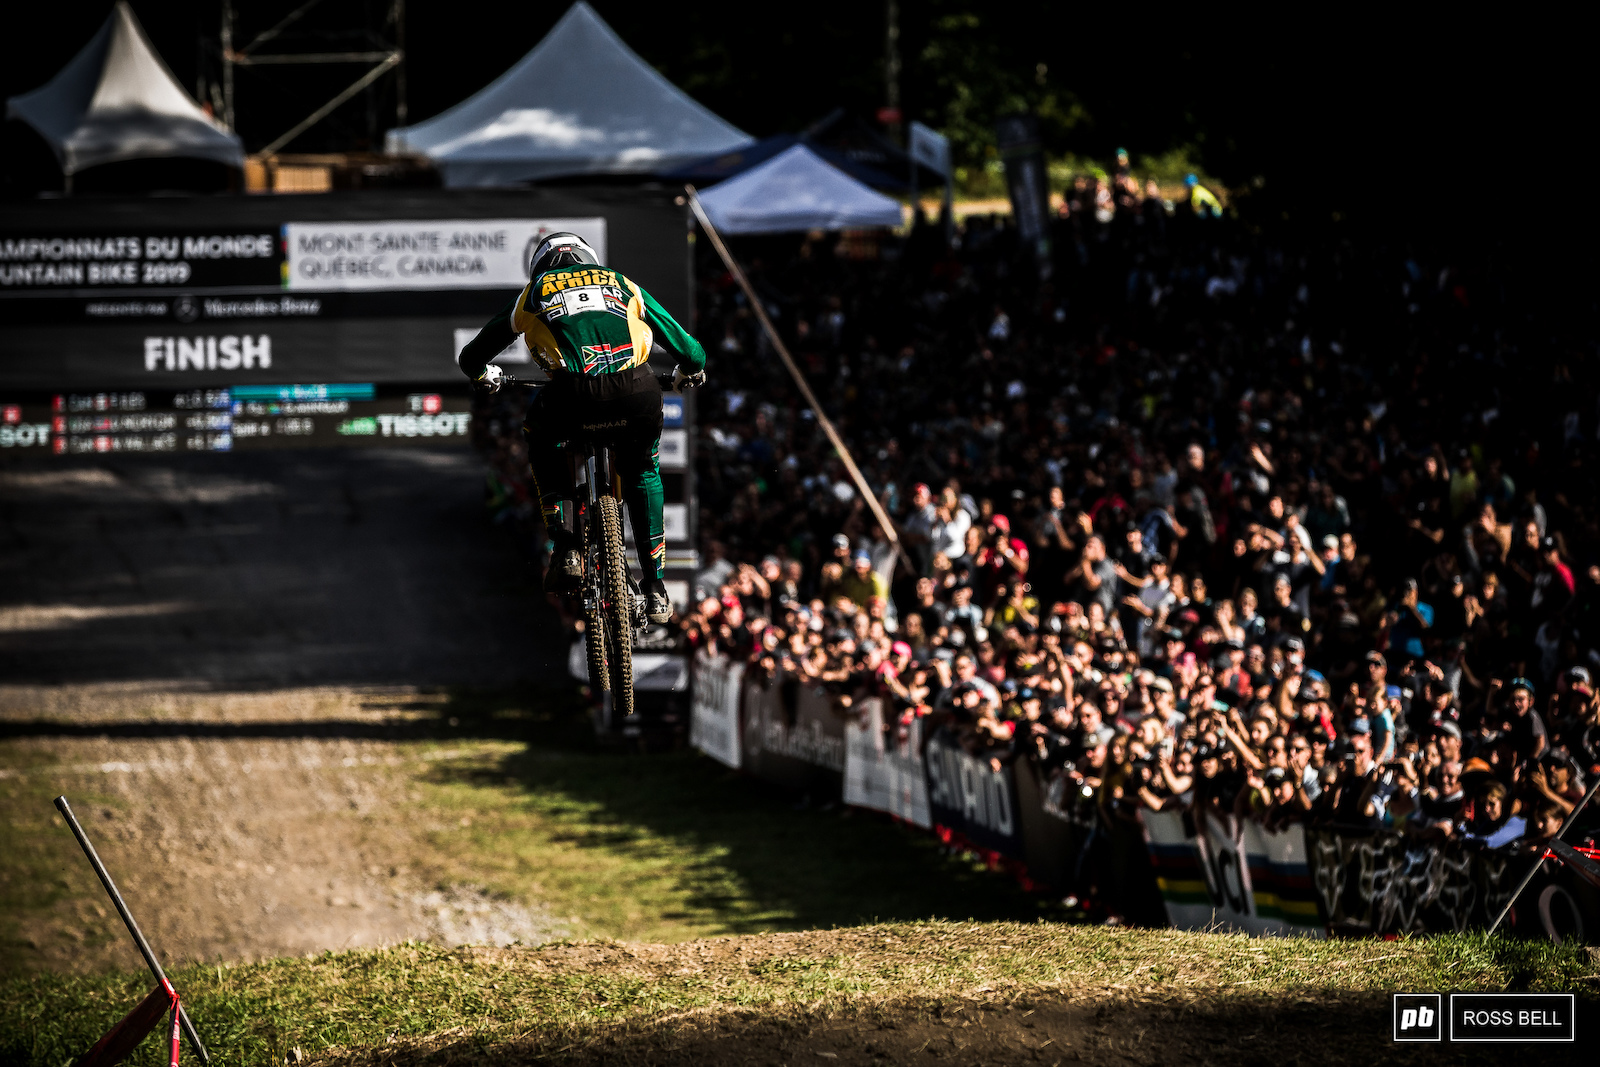 Greg Minnaar charging towards the line at World Champs with green split times how many times have we seen that before